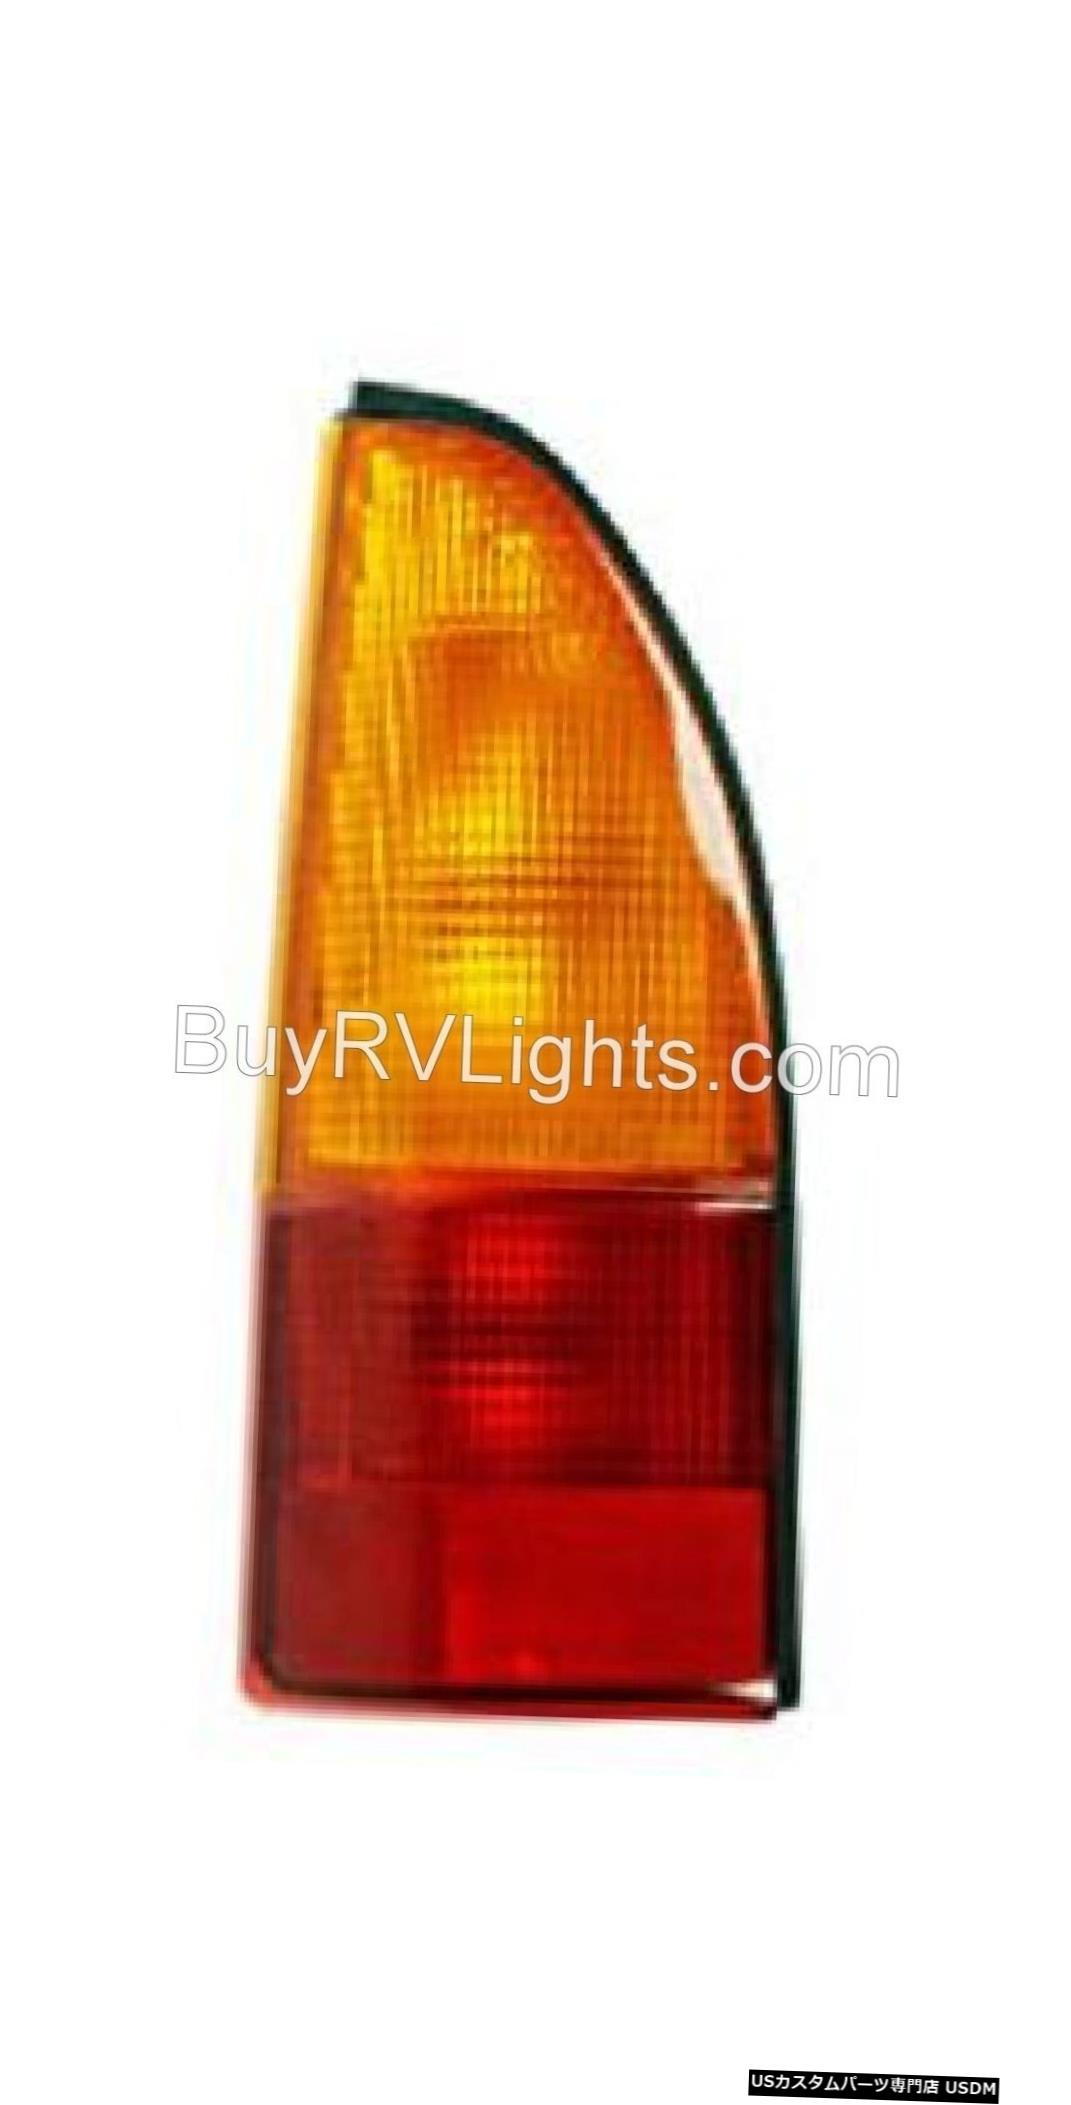 Tail light FLEETWOOD PROVIDENCE 2014 2015上部左ドライバーテールランプテールライトリアRV FLEETWOOD PROVIDENCE 2014 2015 UPPER LEFT DRIVER TAIL LAMP TAILLIGHTS REAR RV